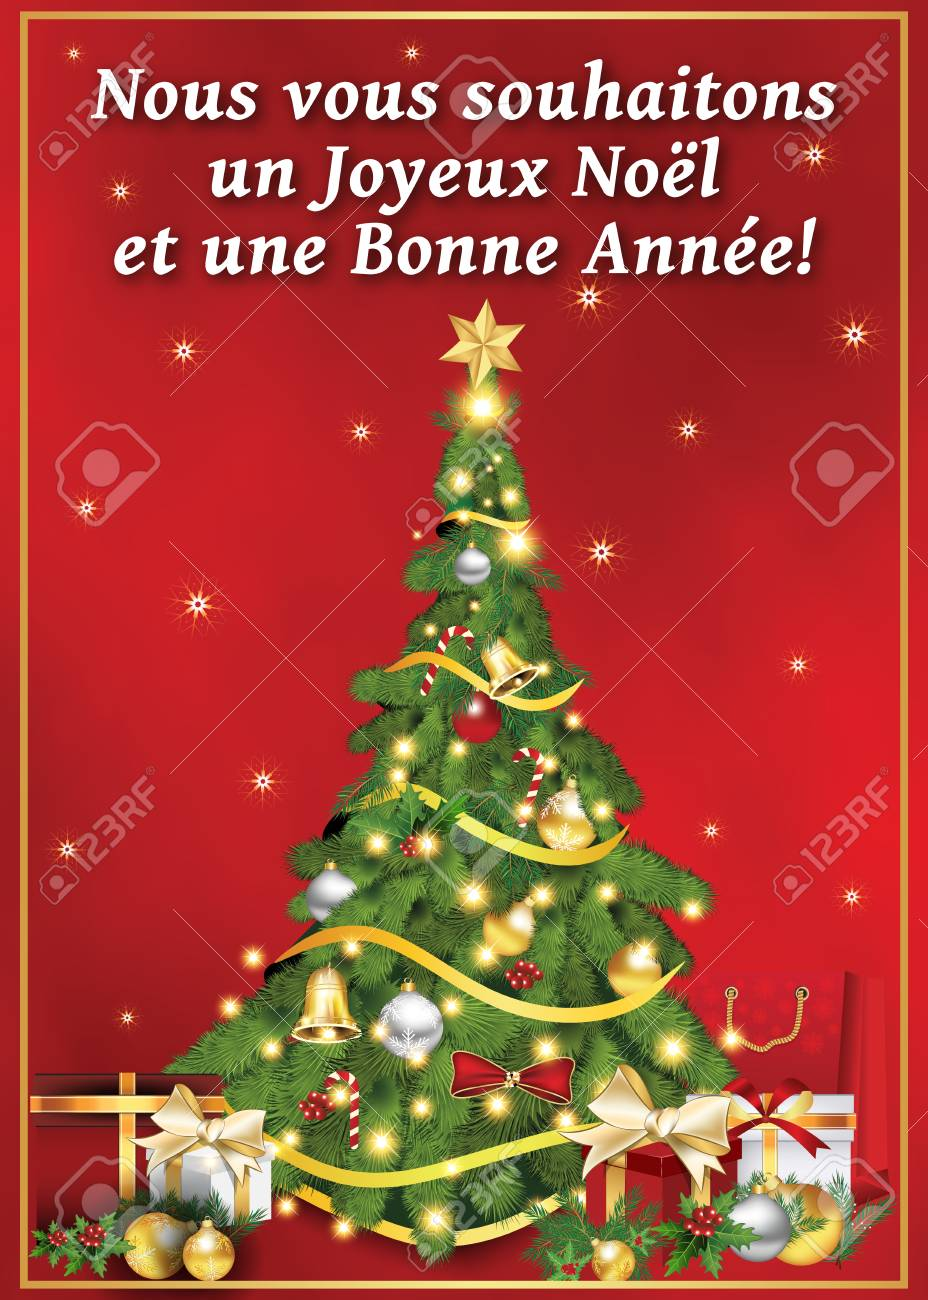 French Greeting Card For Winter Holiday Merry Christmas And Stock